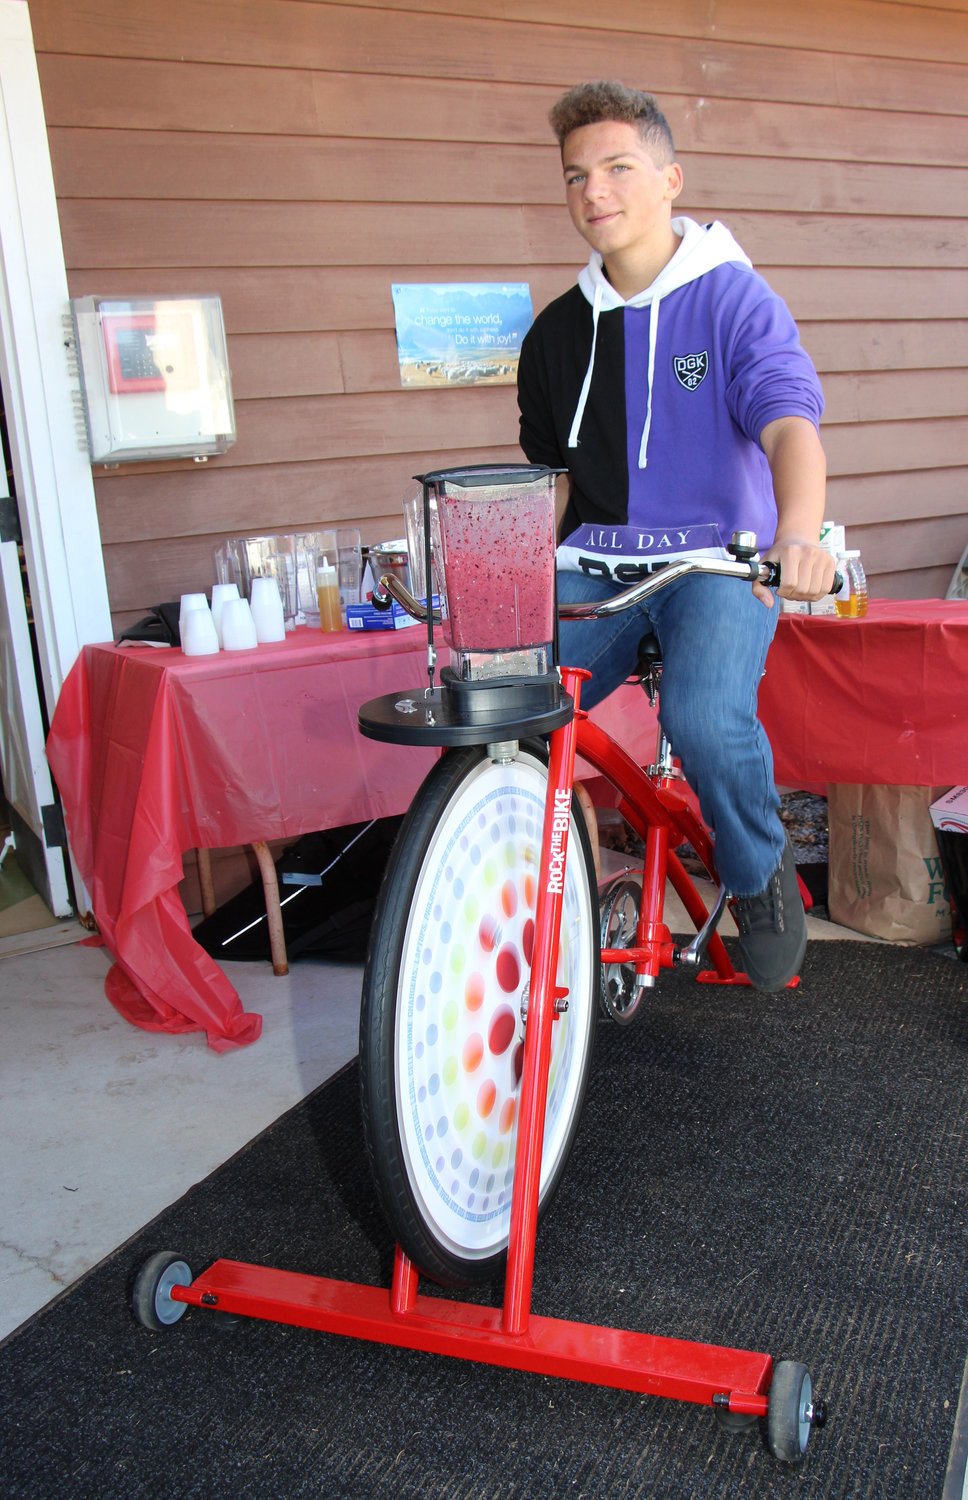 Anthony Patti, 15, rode Rock the Bike, which operates a blender he used to male a mixed berry smoothie.